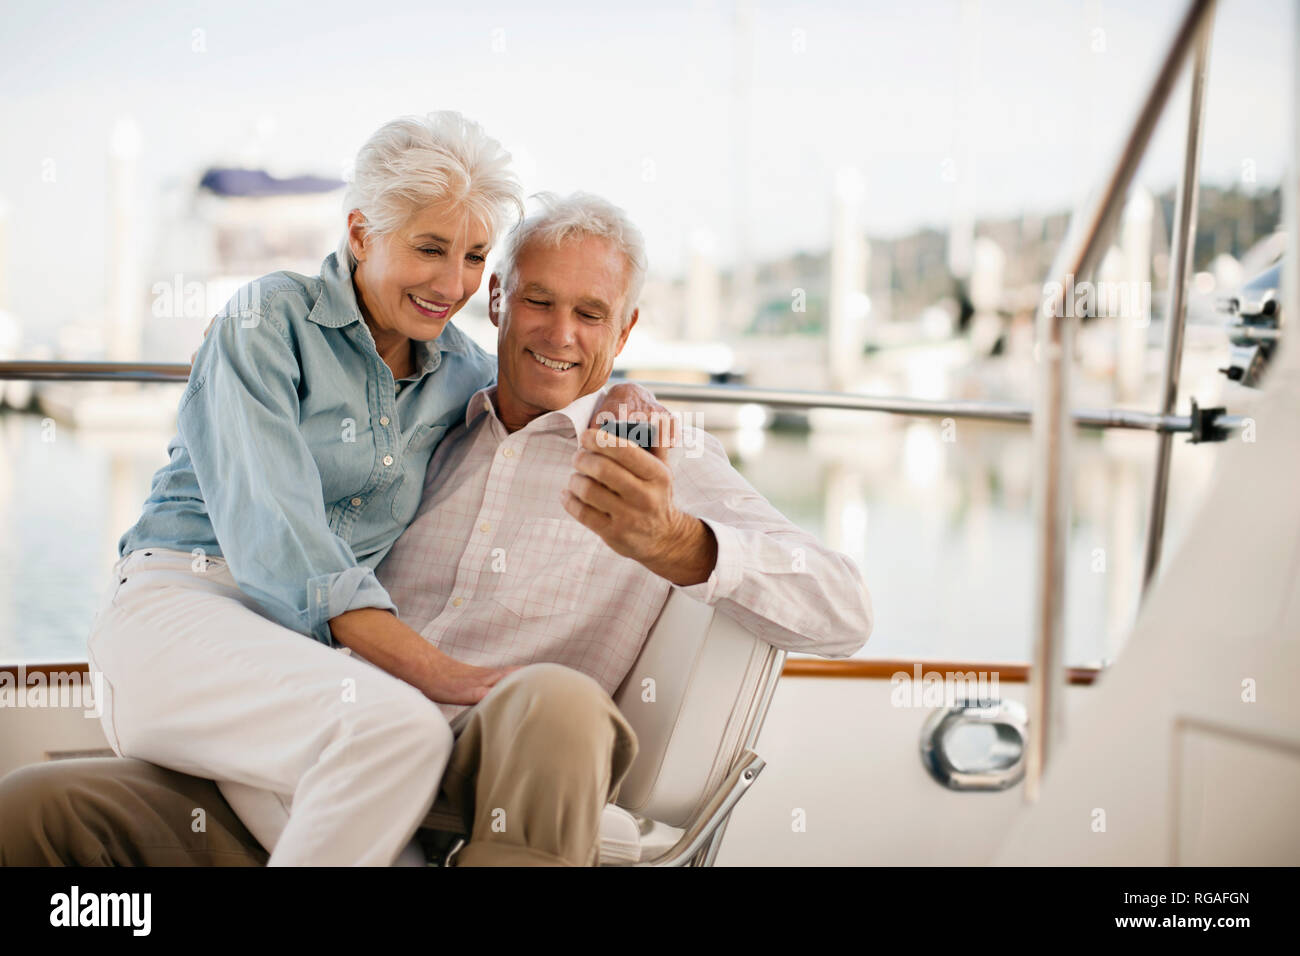 Senior woman sits on her husbands lap as he looks at the screen of his mobile phone. - Stock Image